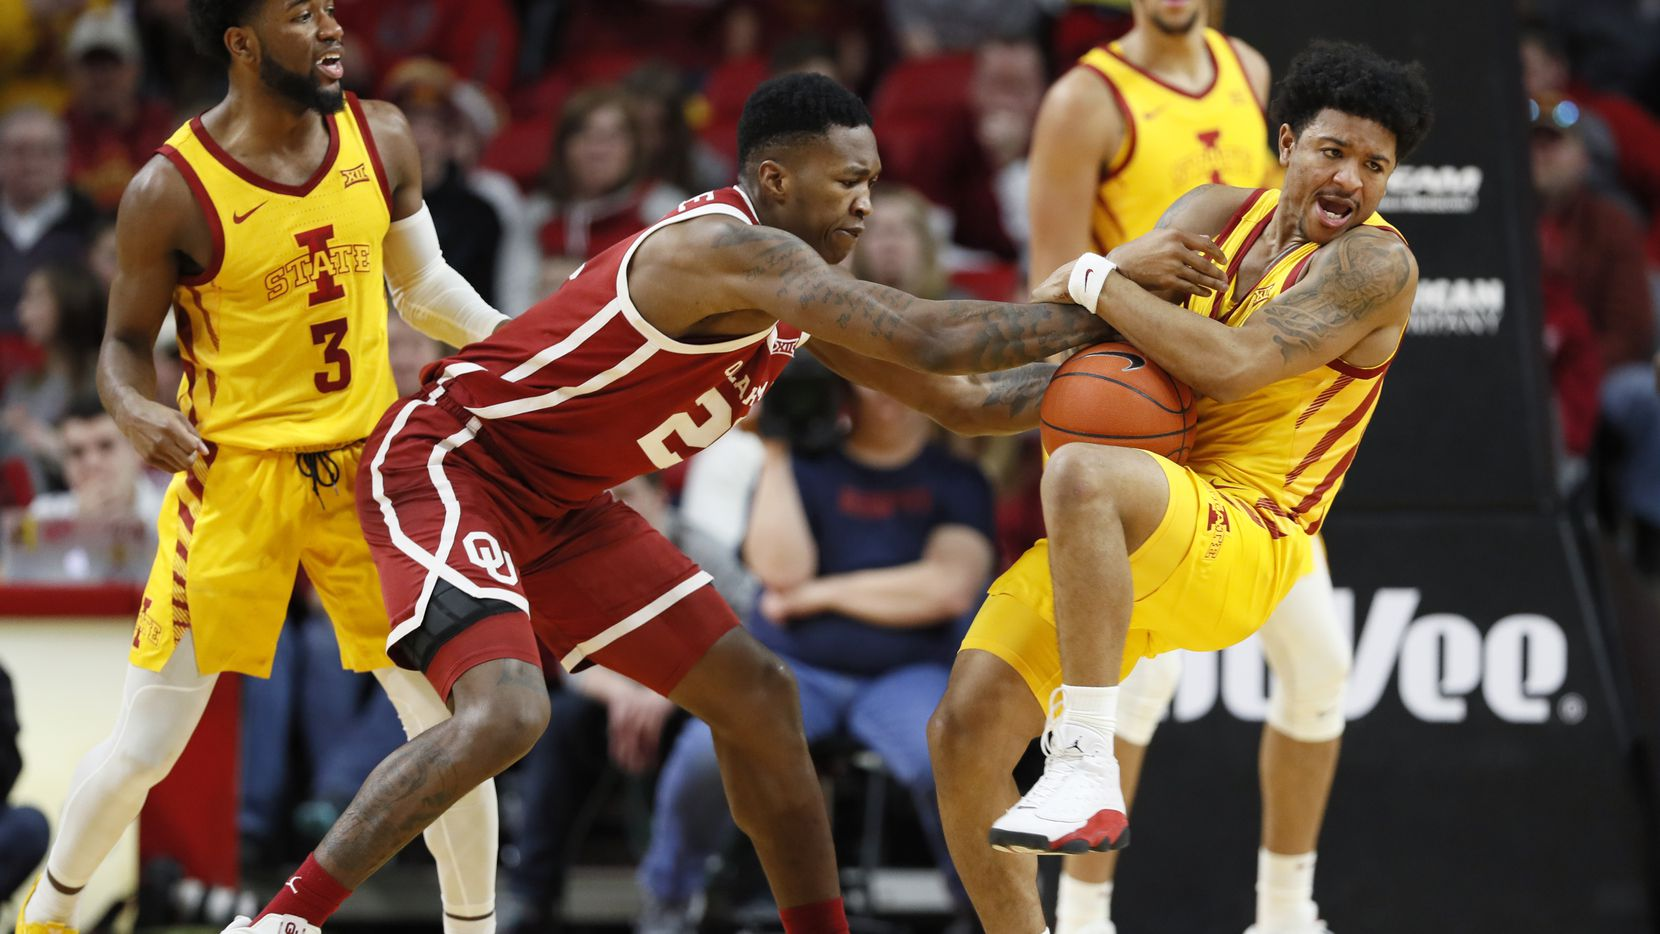 Oklahoma forward Kristian Doolittle is fouled by Iowa State guard Prentiss Nixon, right, during the second half of an NCAA college basketball game, Saturday, Jan. 11, 2020, in Ames, Iowa.